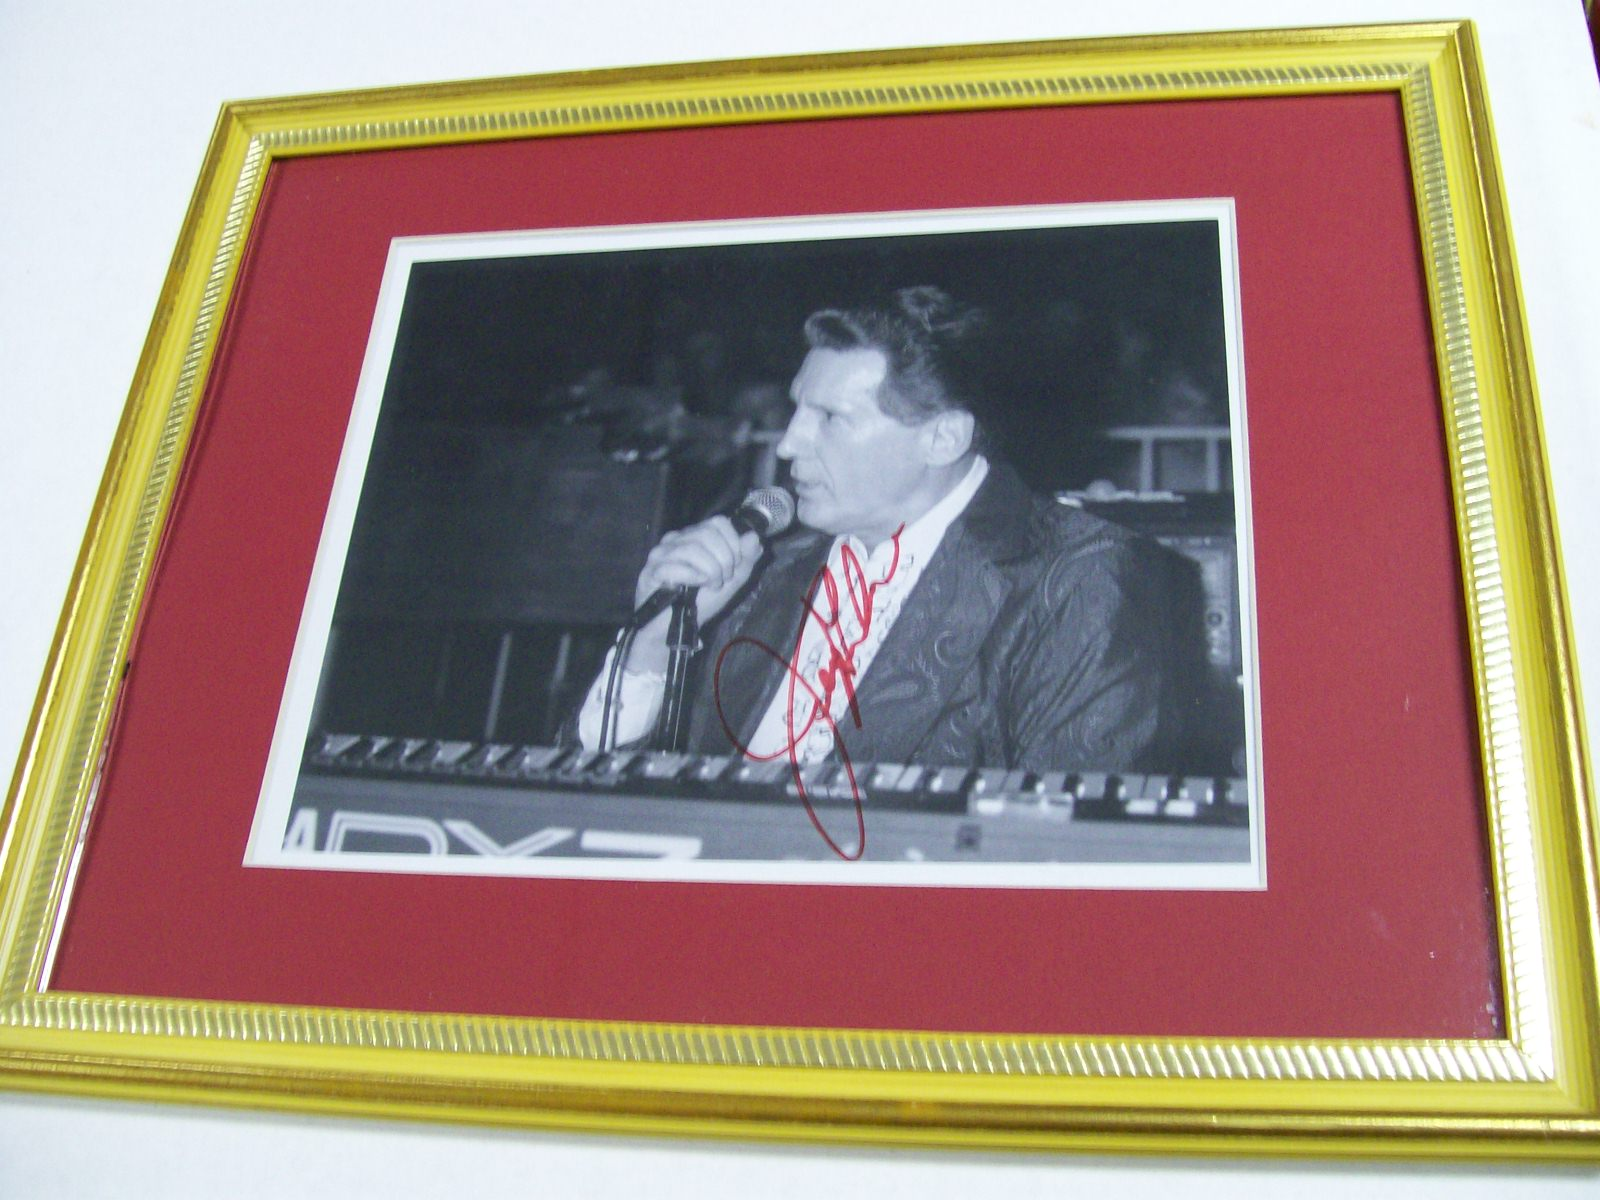 Jerry Lee Lewis signed framed photo/COA from his Wife